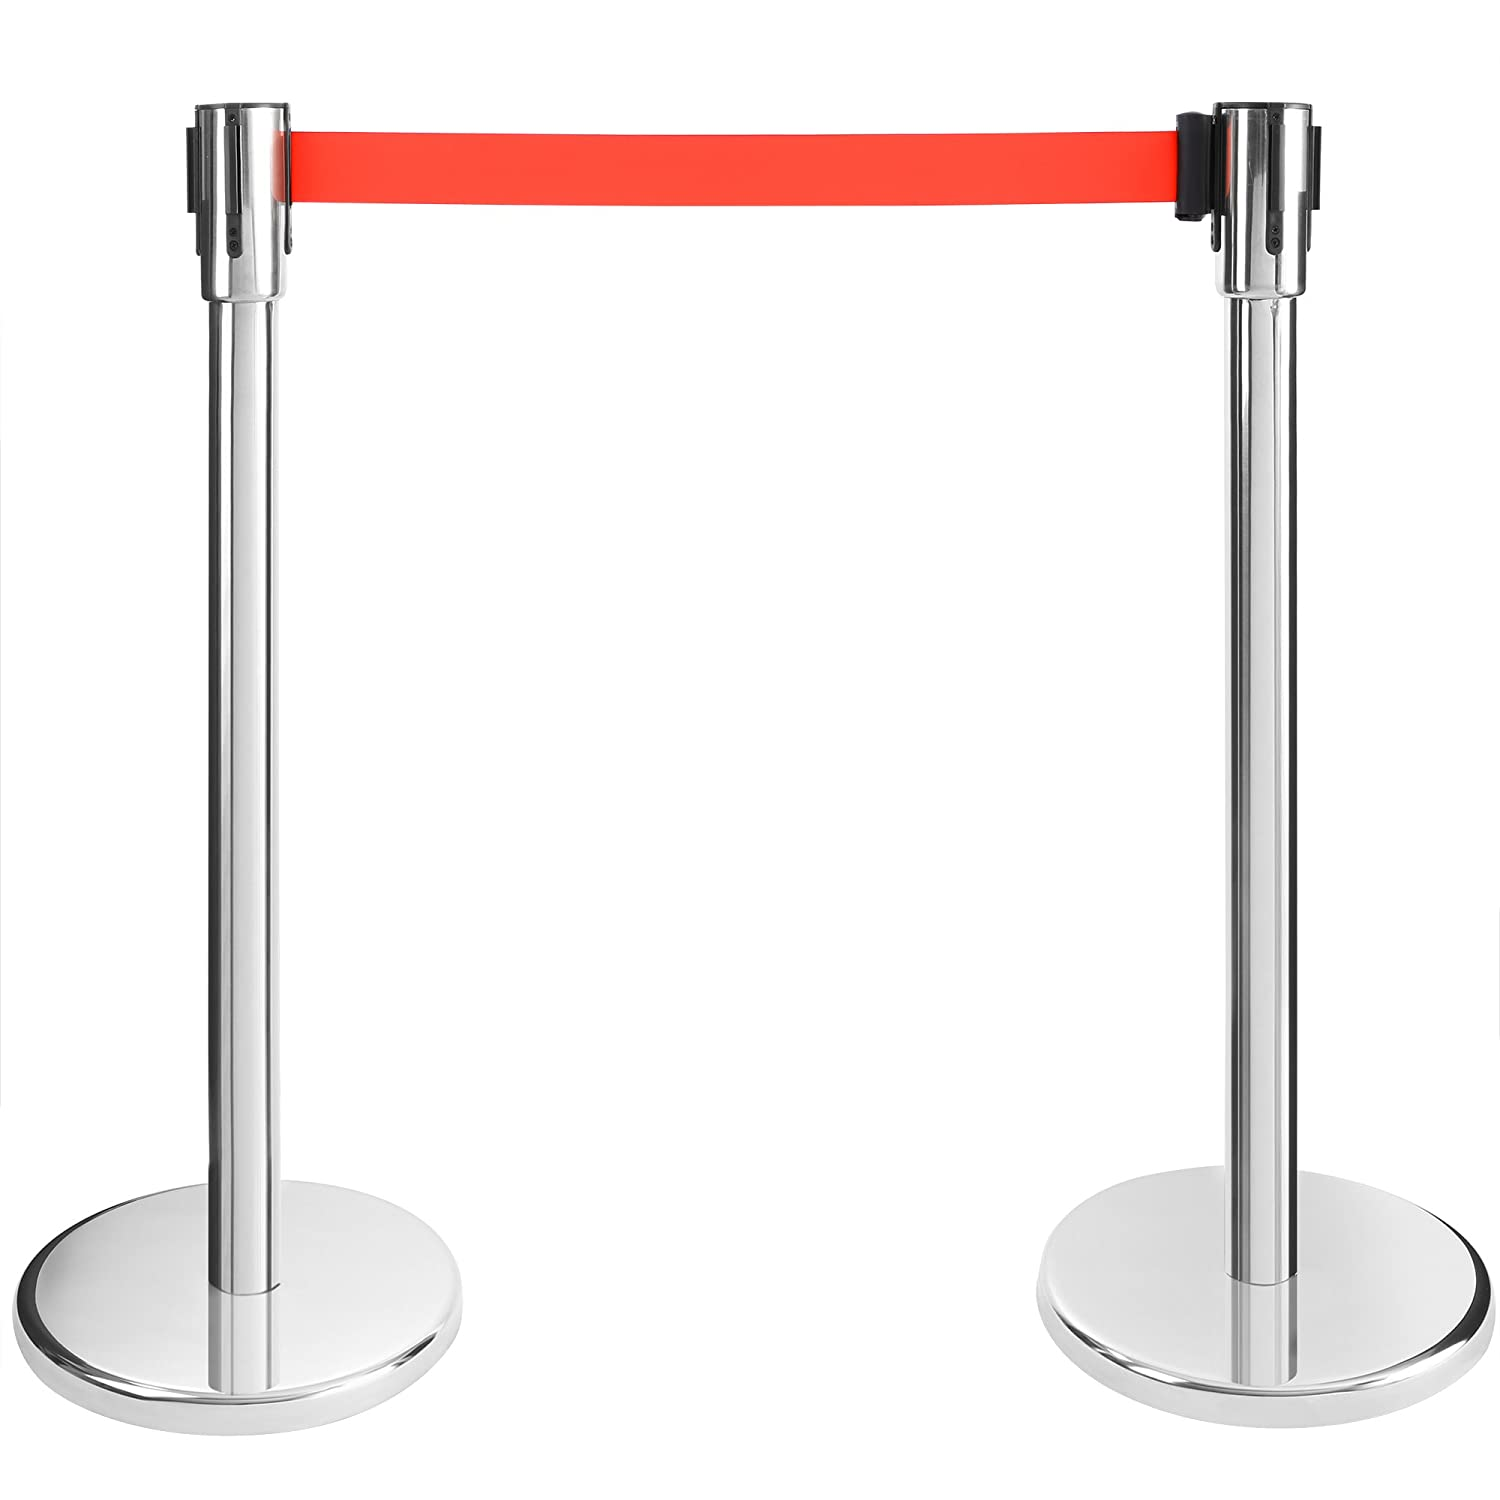 Crowd Control Barriers Airport Retractable Barrier Crowd Barriers Control Barriers Red Canbolat Vertriebs GmbH